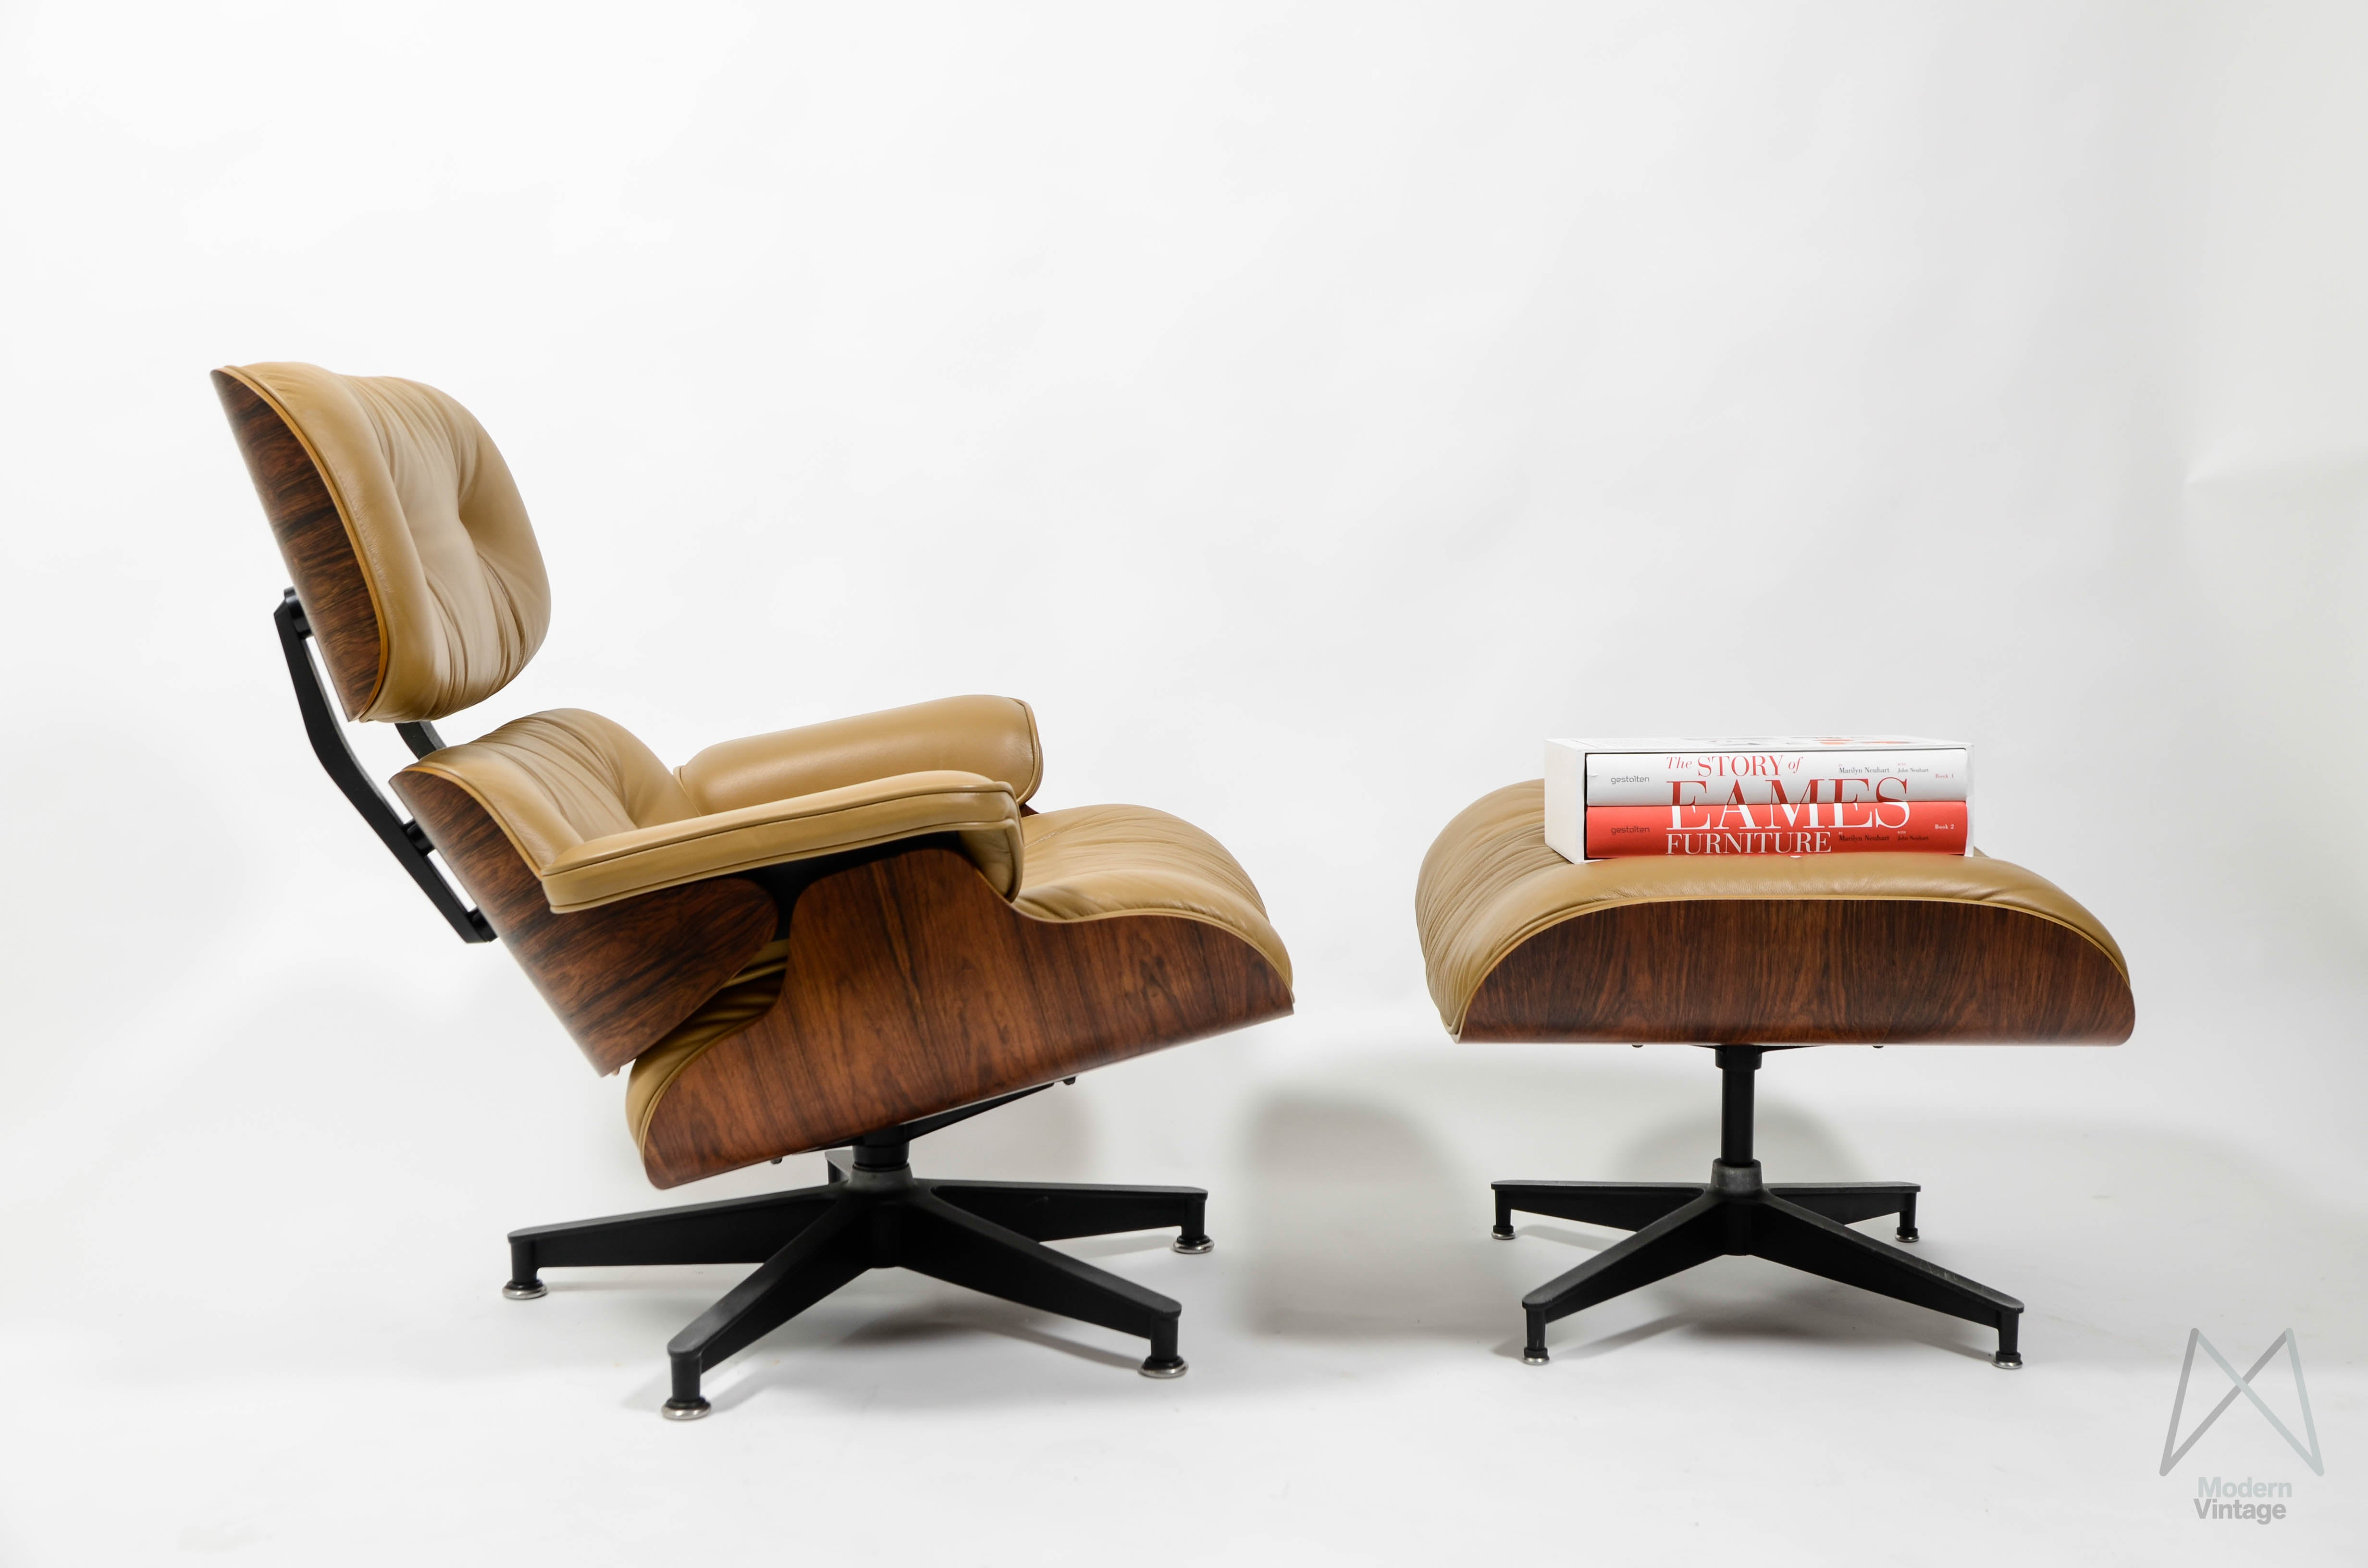 Modern Vintage Amsterdam Original Eames Furniture — Eames Lounge Chair Otto